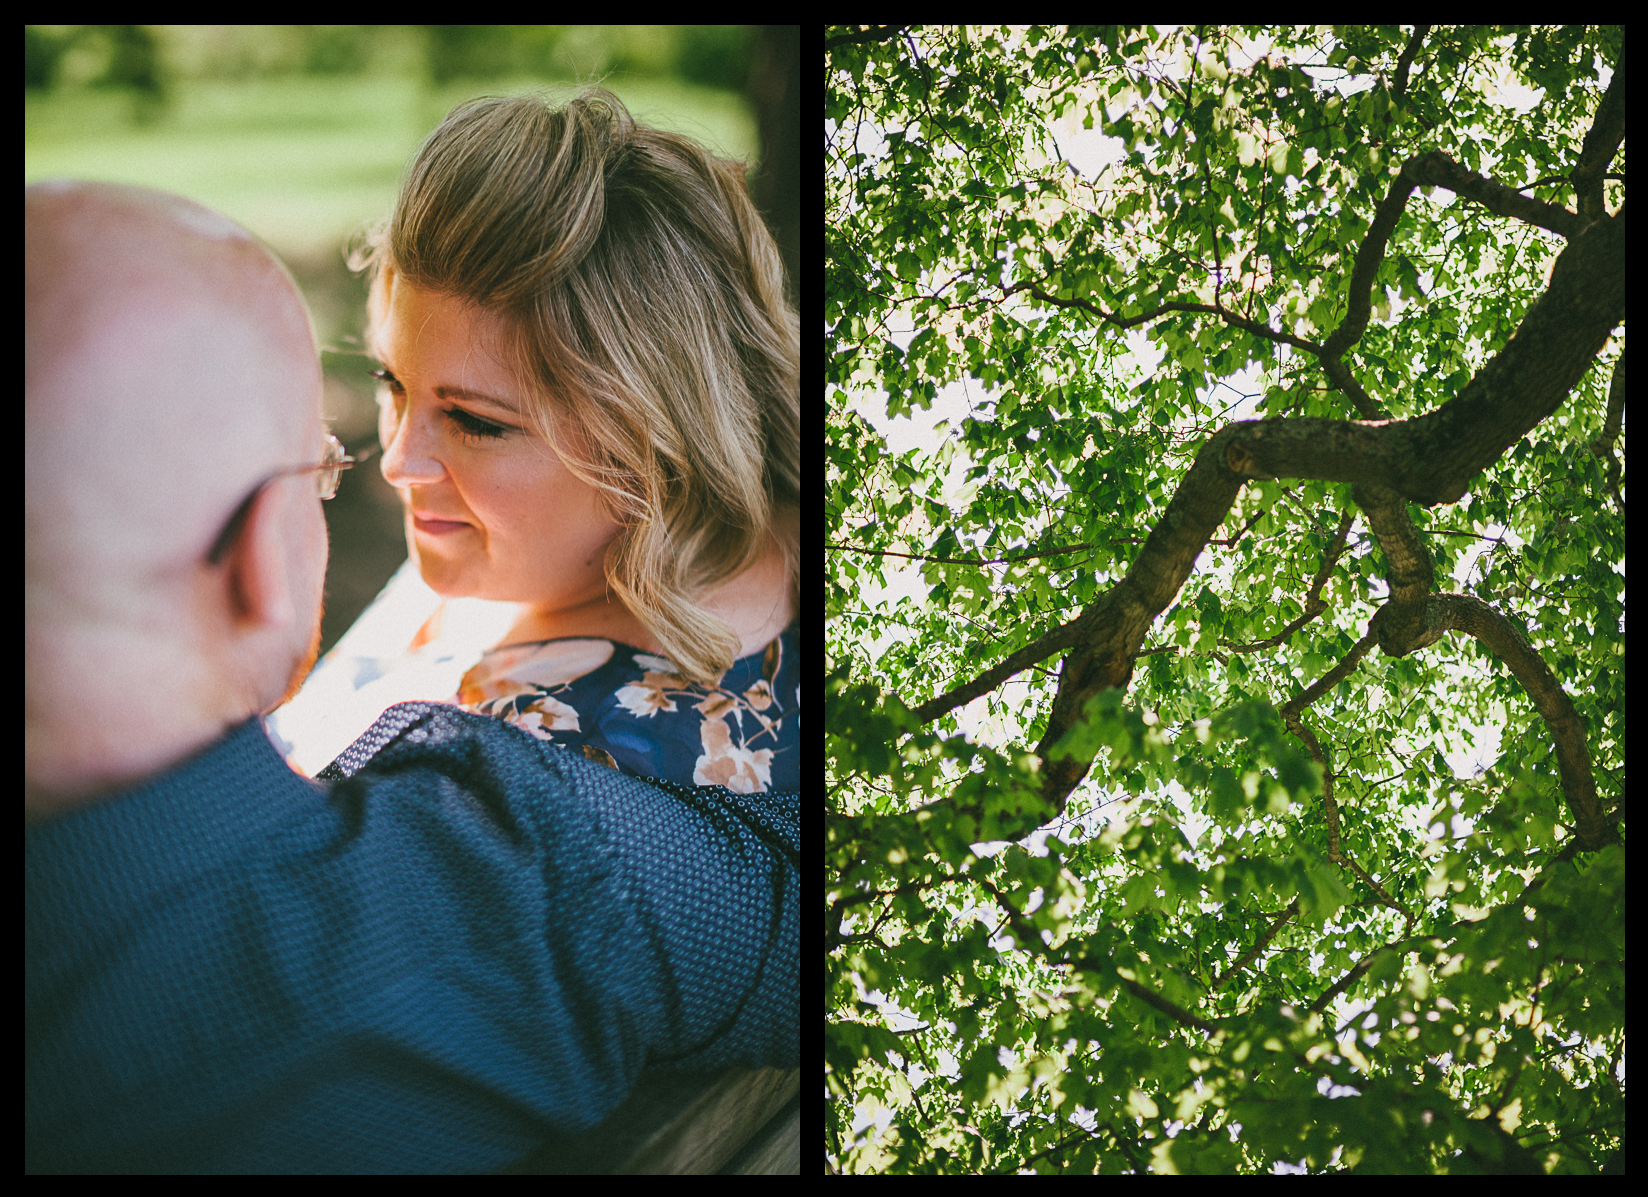 breighton-and-basette-photography-copyrighted-image-blog-jennifer-and-sean-engagement-collage-1.jpg